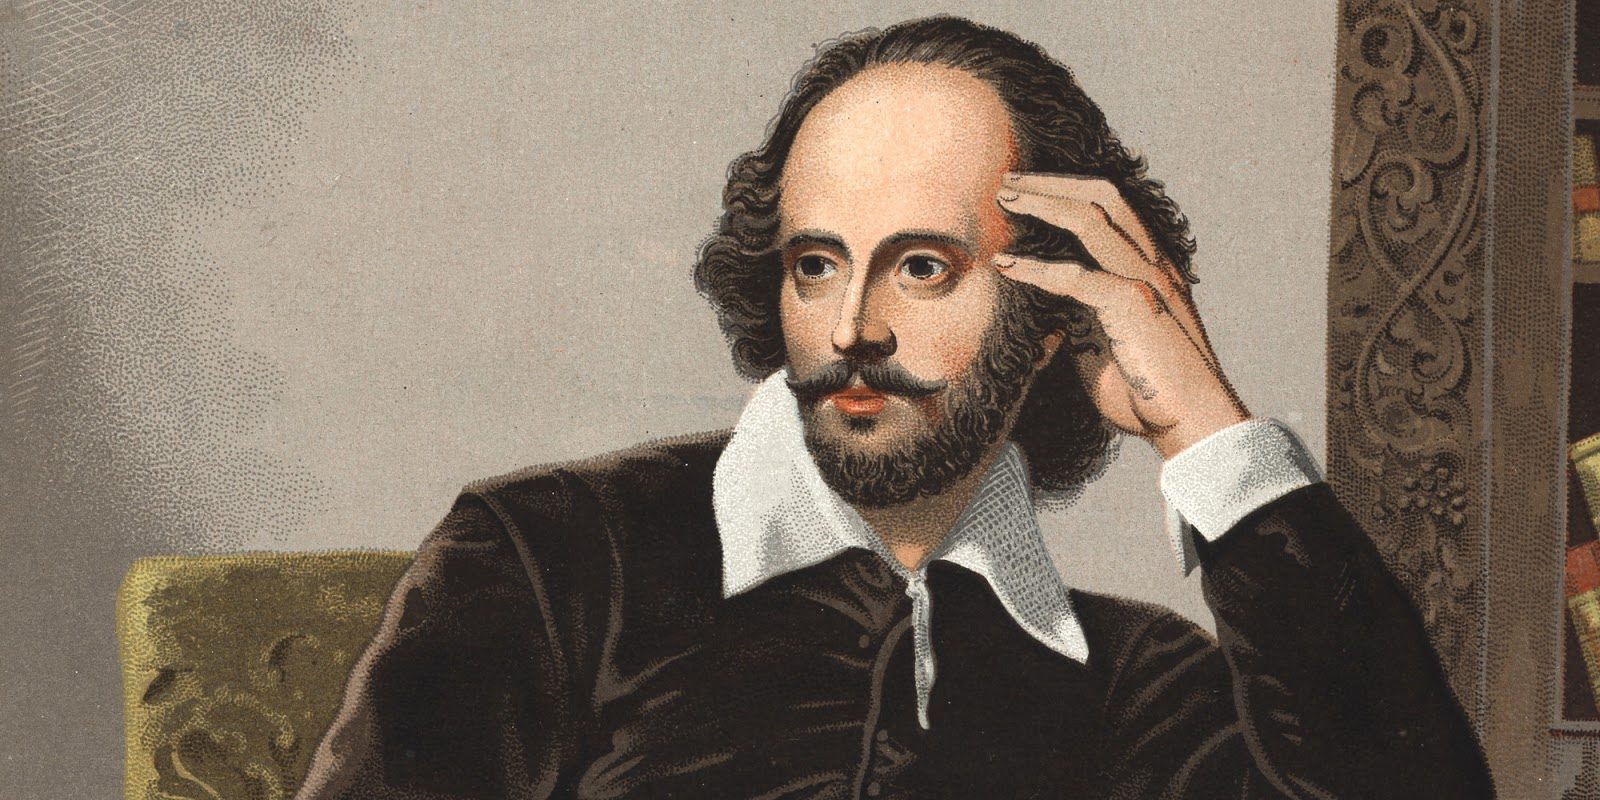 a biography of william shakespeare a playwright Product description he is the world's most influential and admired writer, a man whose imaginative genius still moves us, nearly four centuries after his deathwilliam shakespeare's tumultuous life produced an unmatched legacy of drama and poetry.